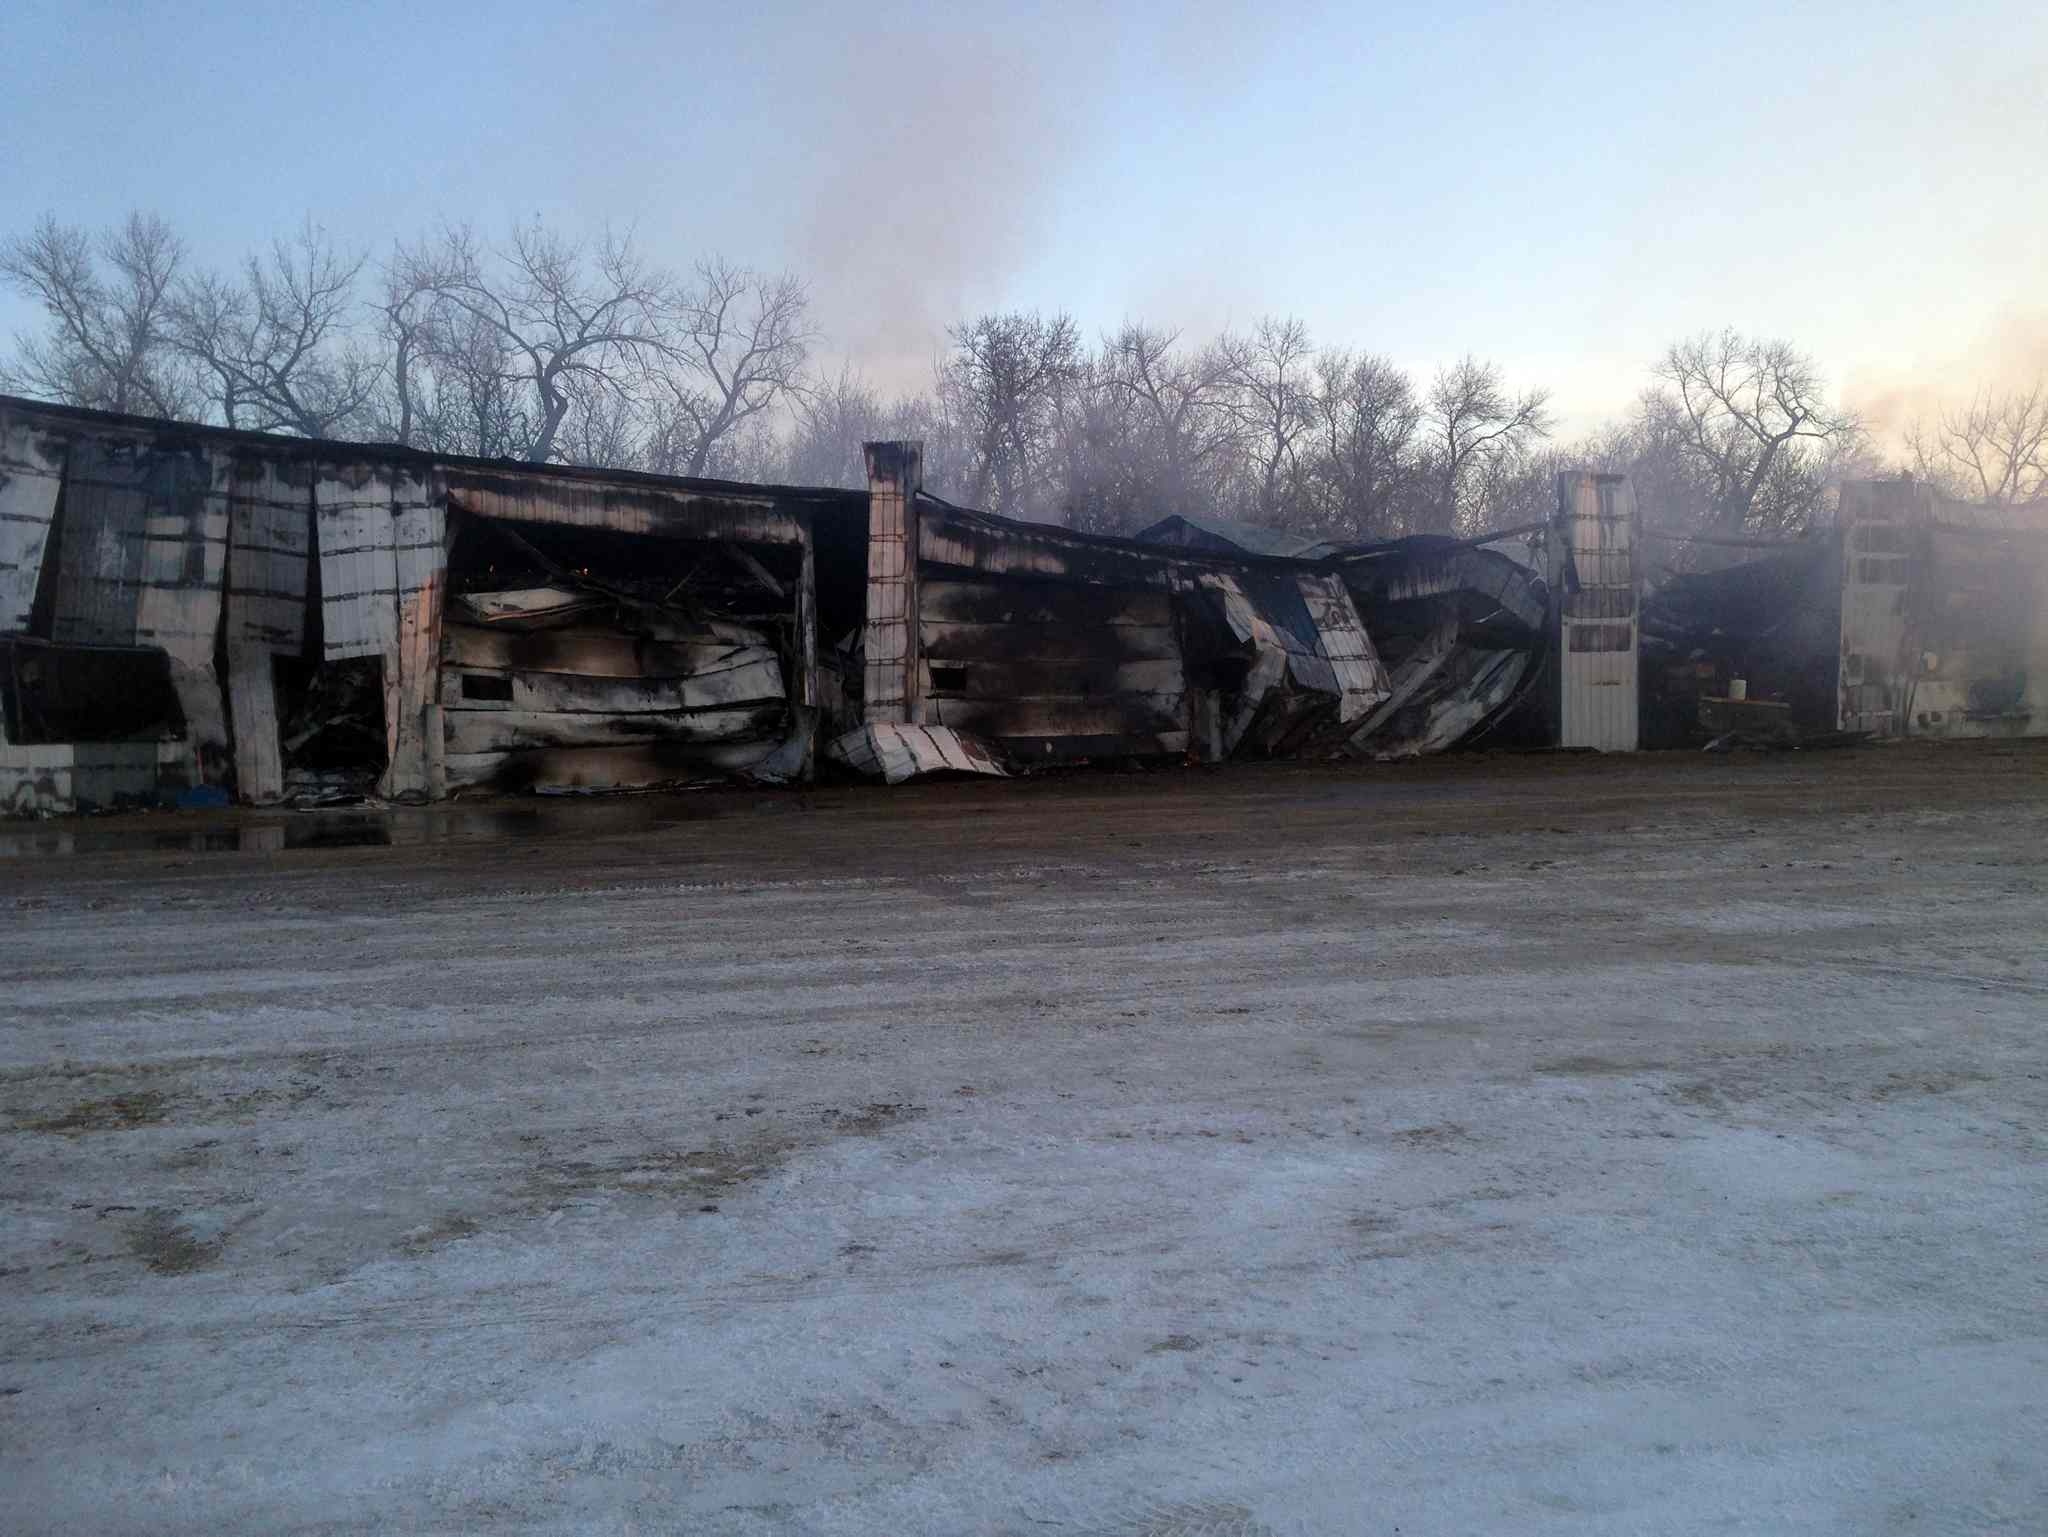 The Hamiota Feedlot was totally destroyed by the fire.